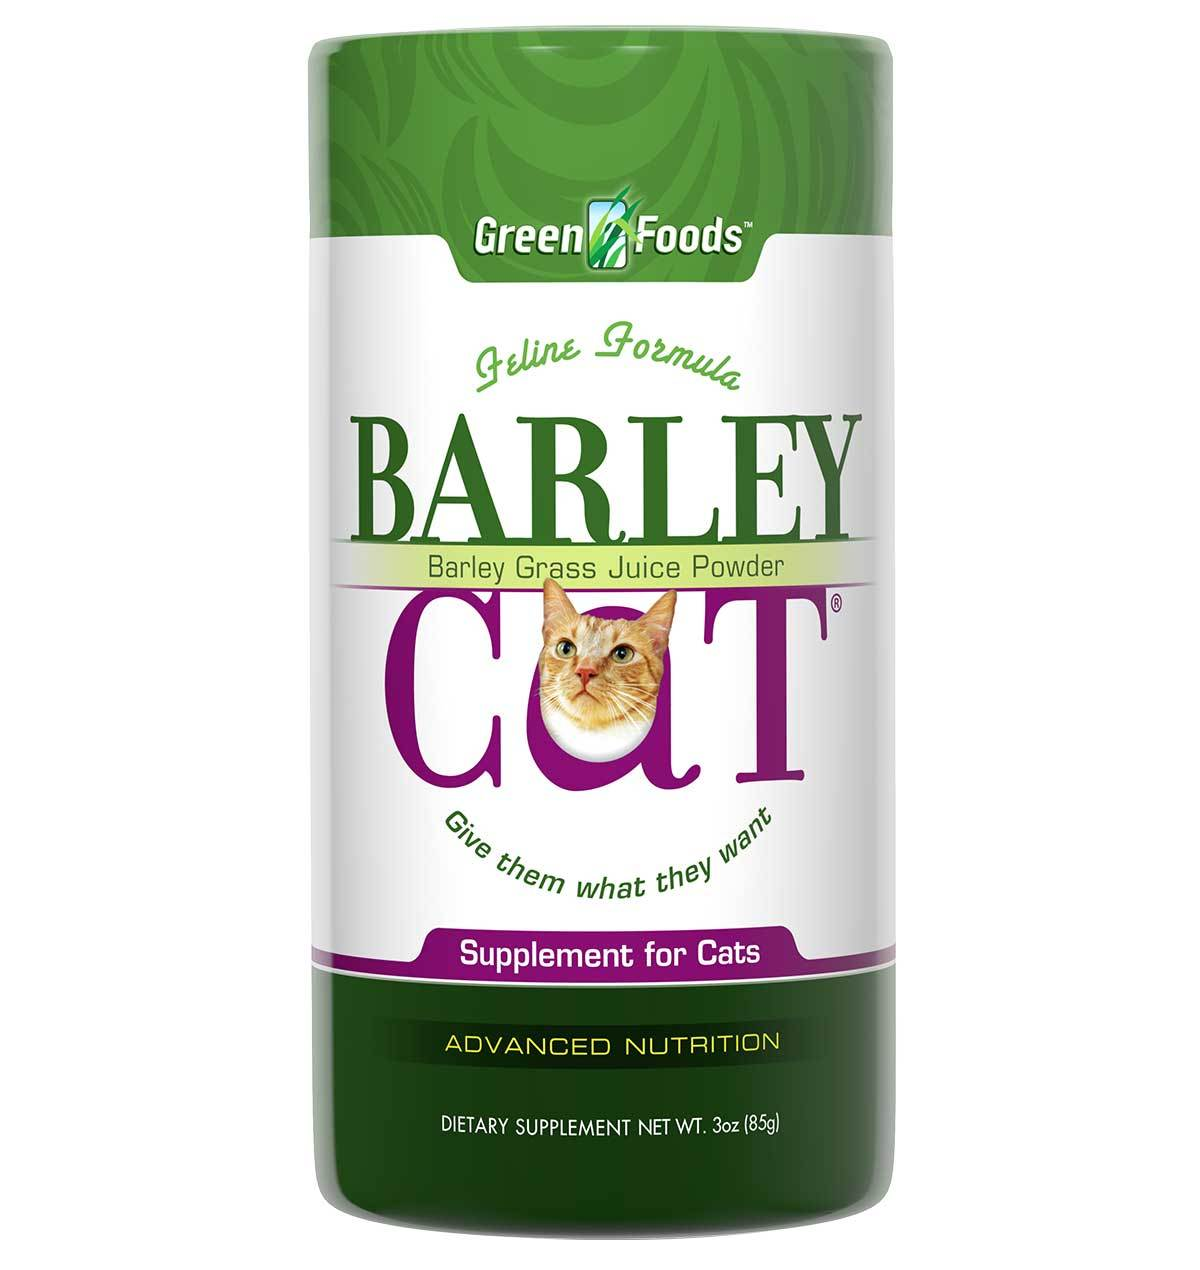 Image of Barley Cat